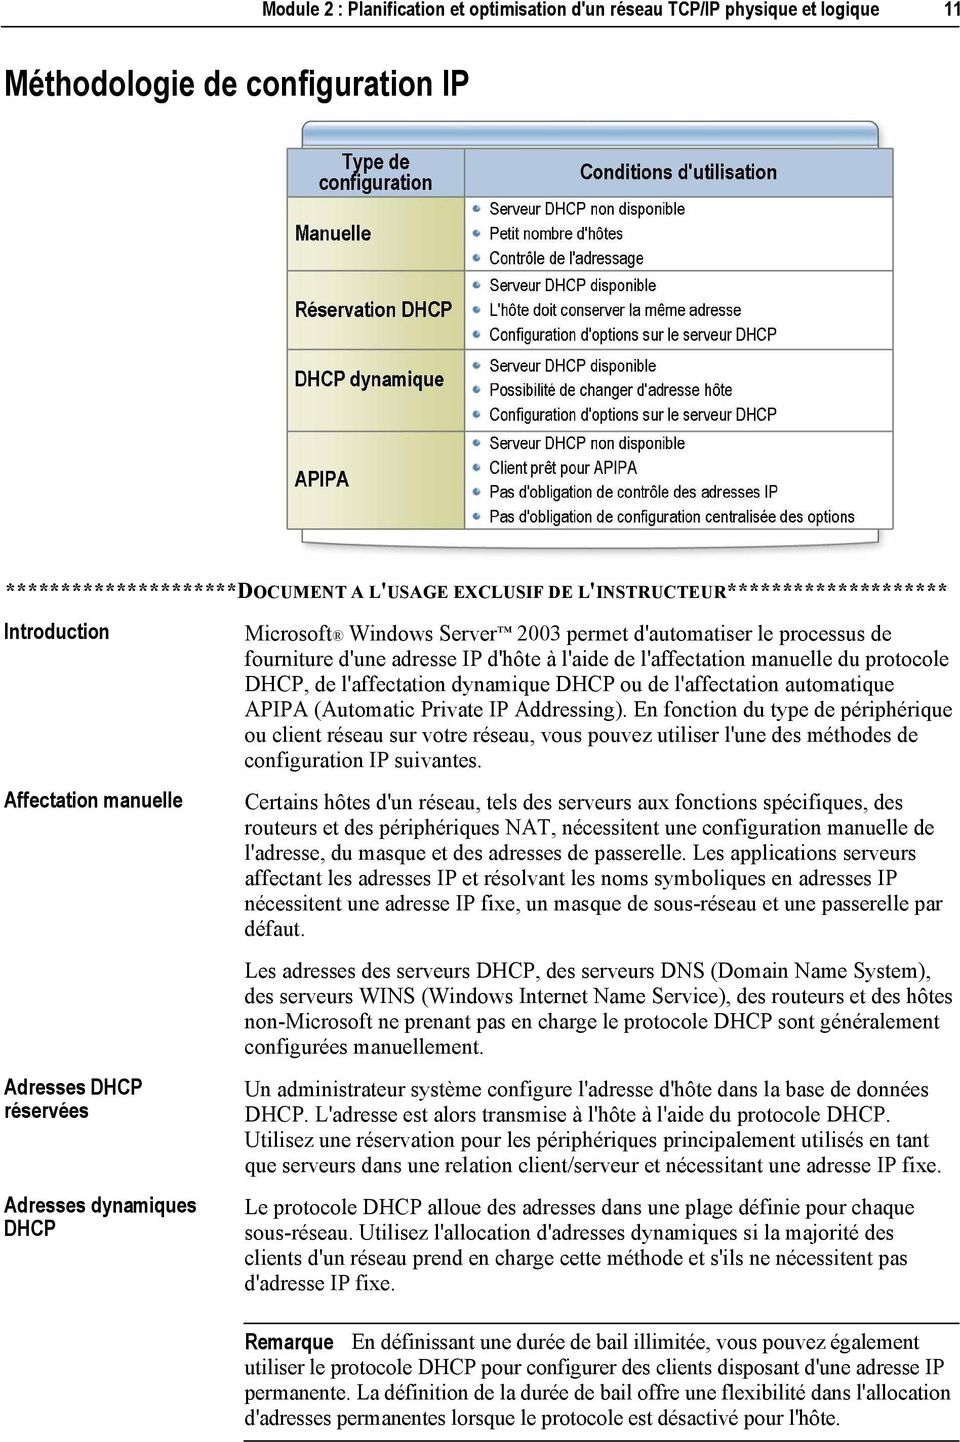 d'une adresse IP d'hôte à l'aide de l'affectation manuelle du protocole DHCP, de l'affectation dynamique DHCP ou de l'affectation automatique APIPA (Automatic Private IP Addressing).